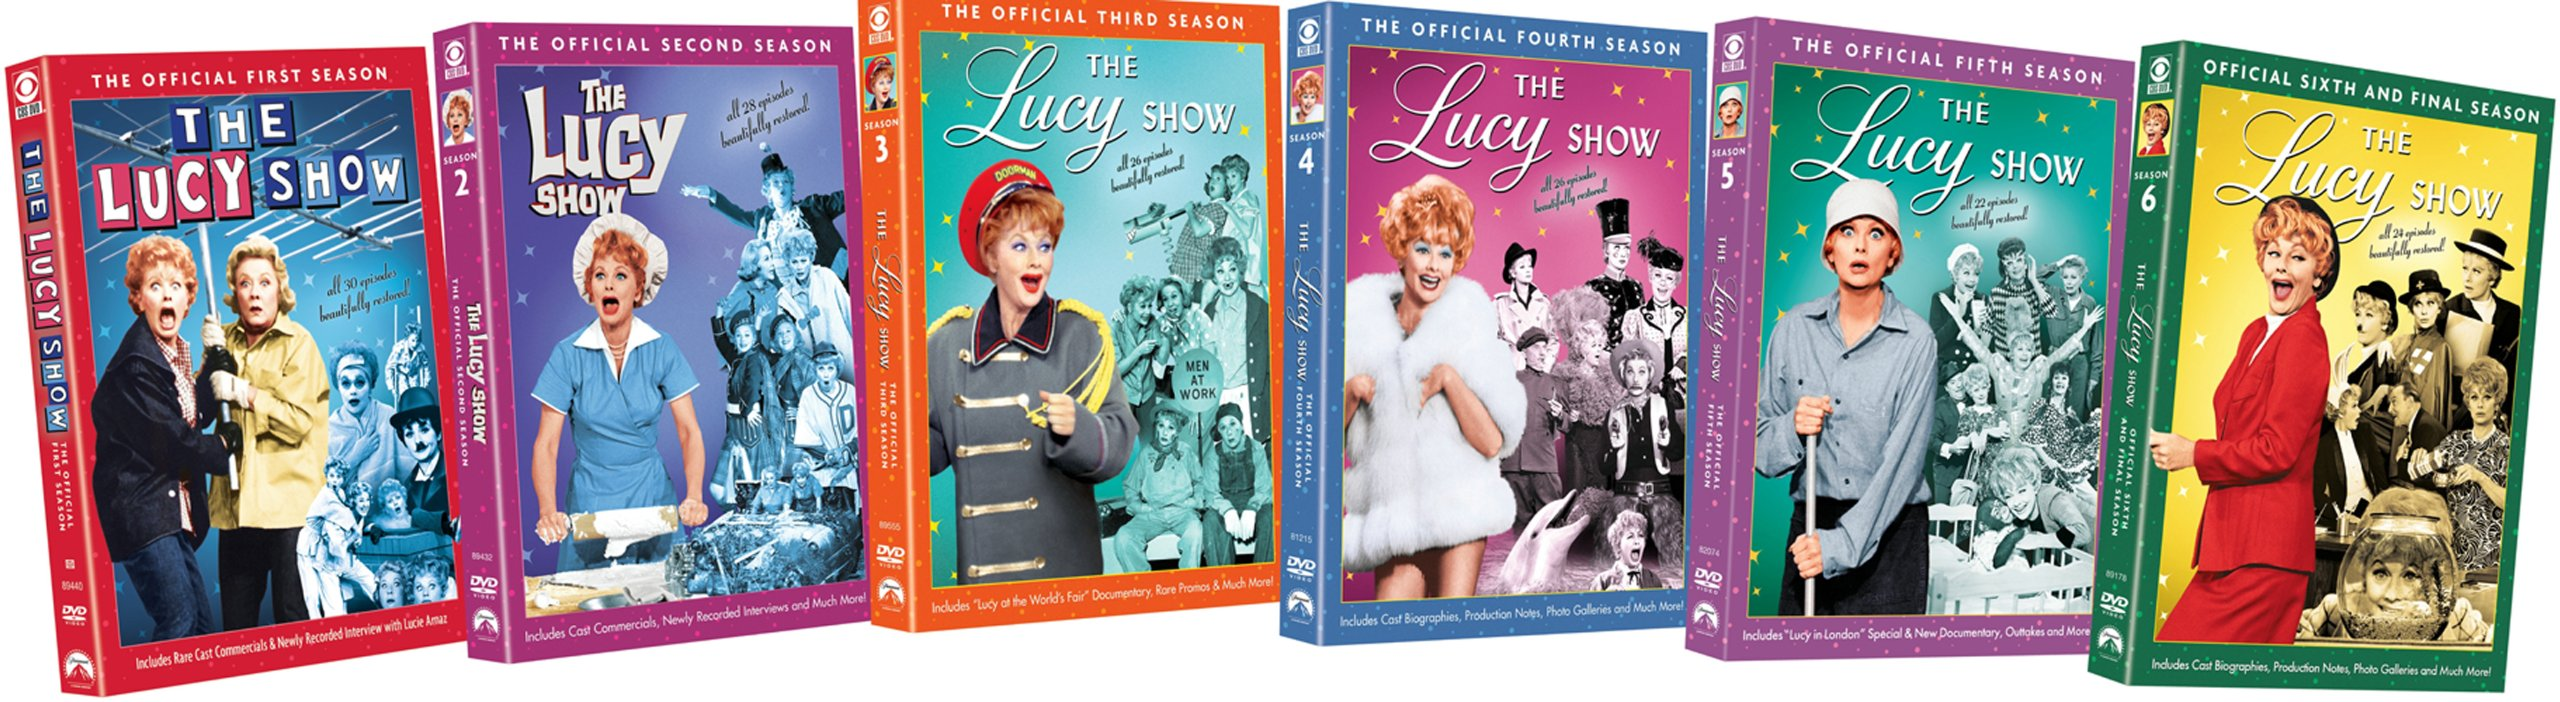 The Lucy Show: The Complete Series by Paramount